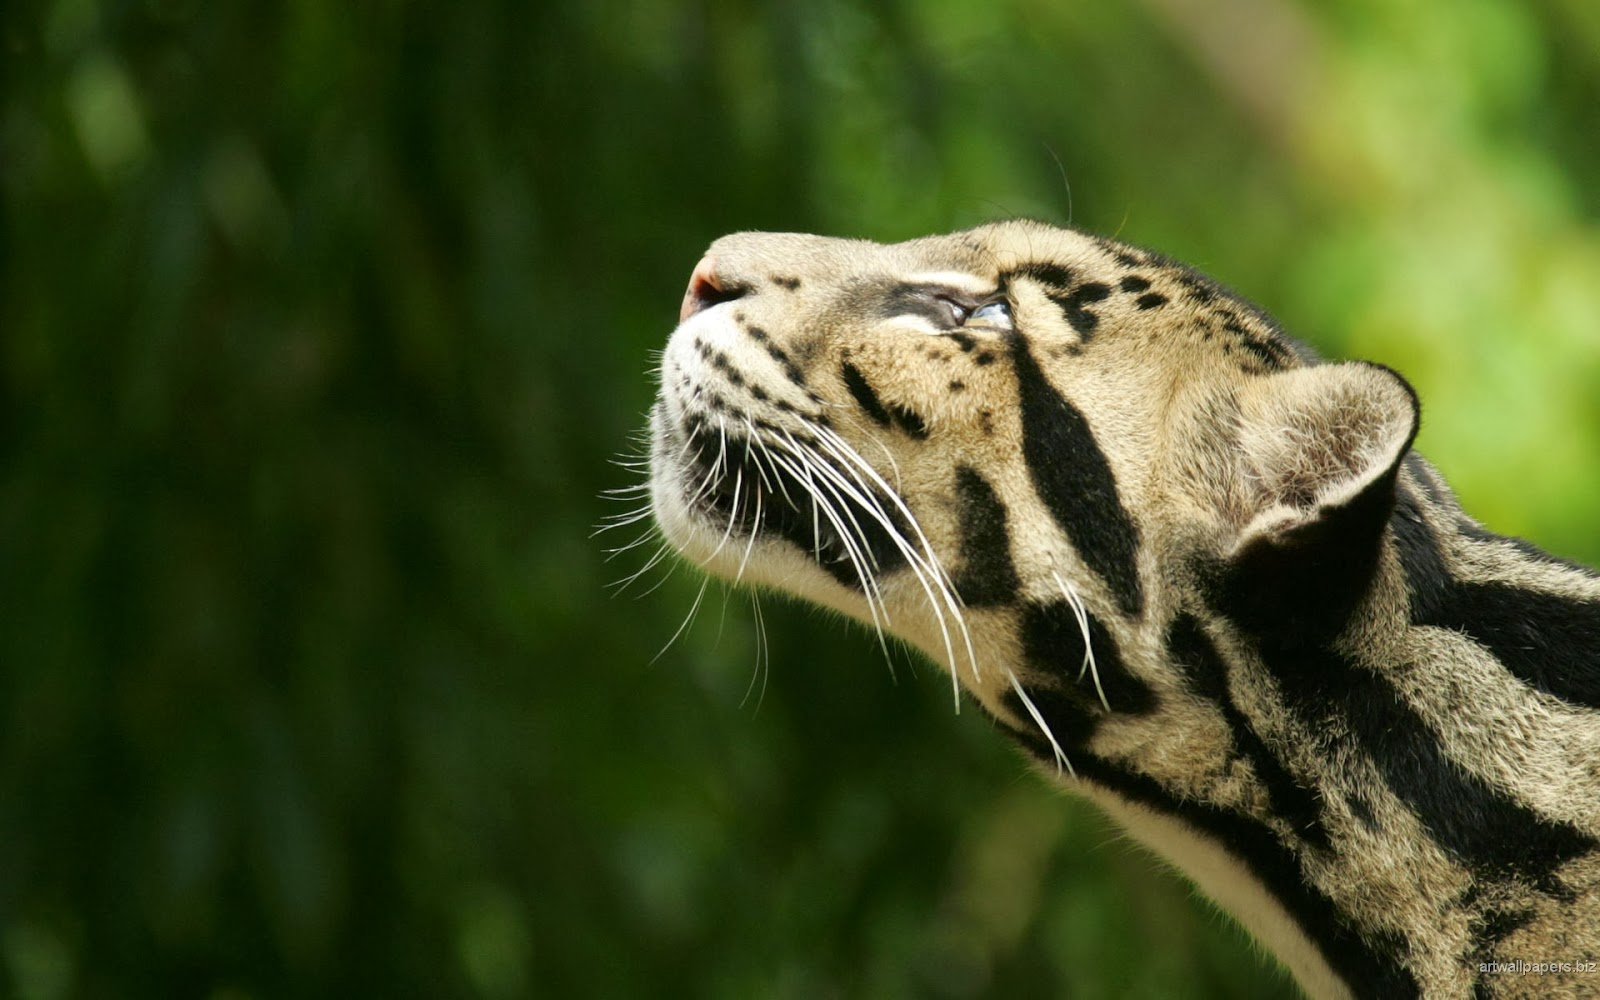 Hd Animal Wallpapers Wild Life Wild Animals High: Animals HD Funny Wallpapers